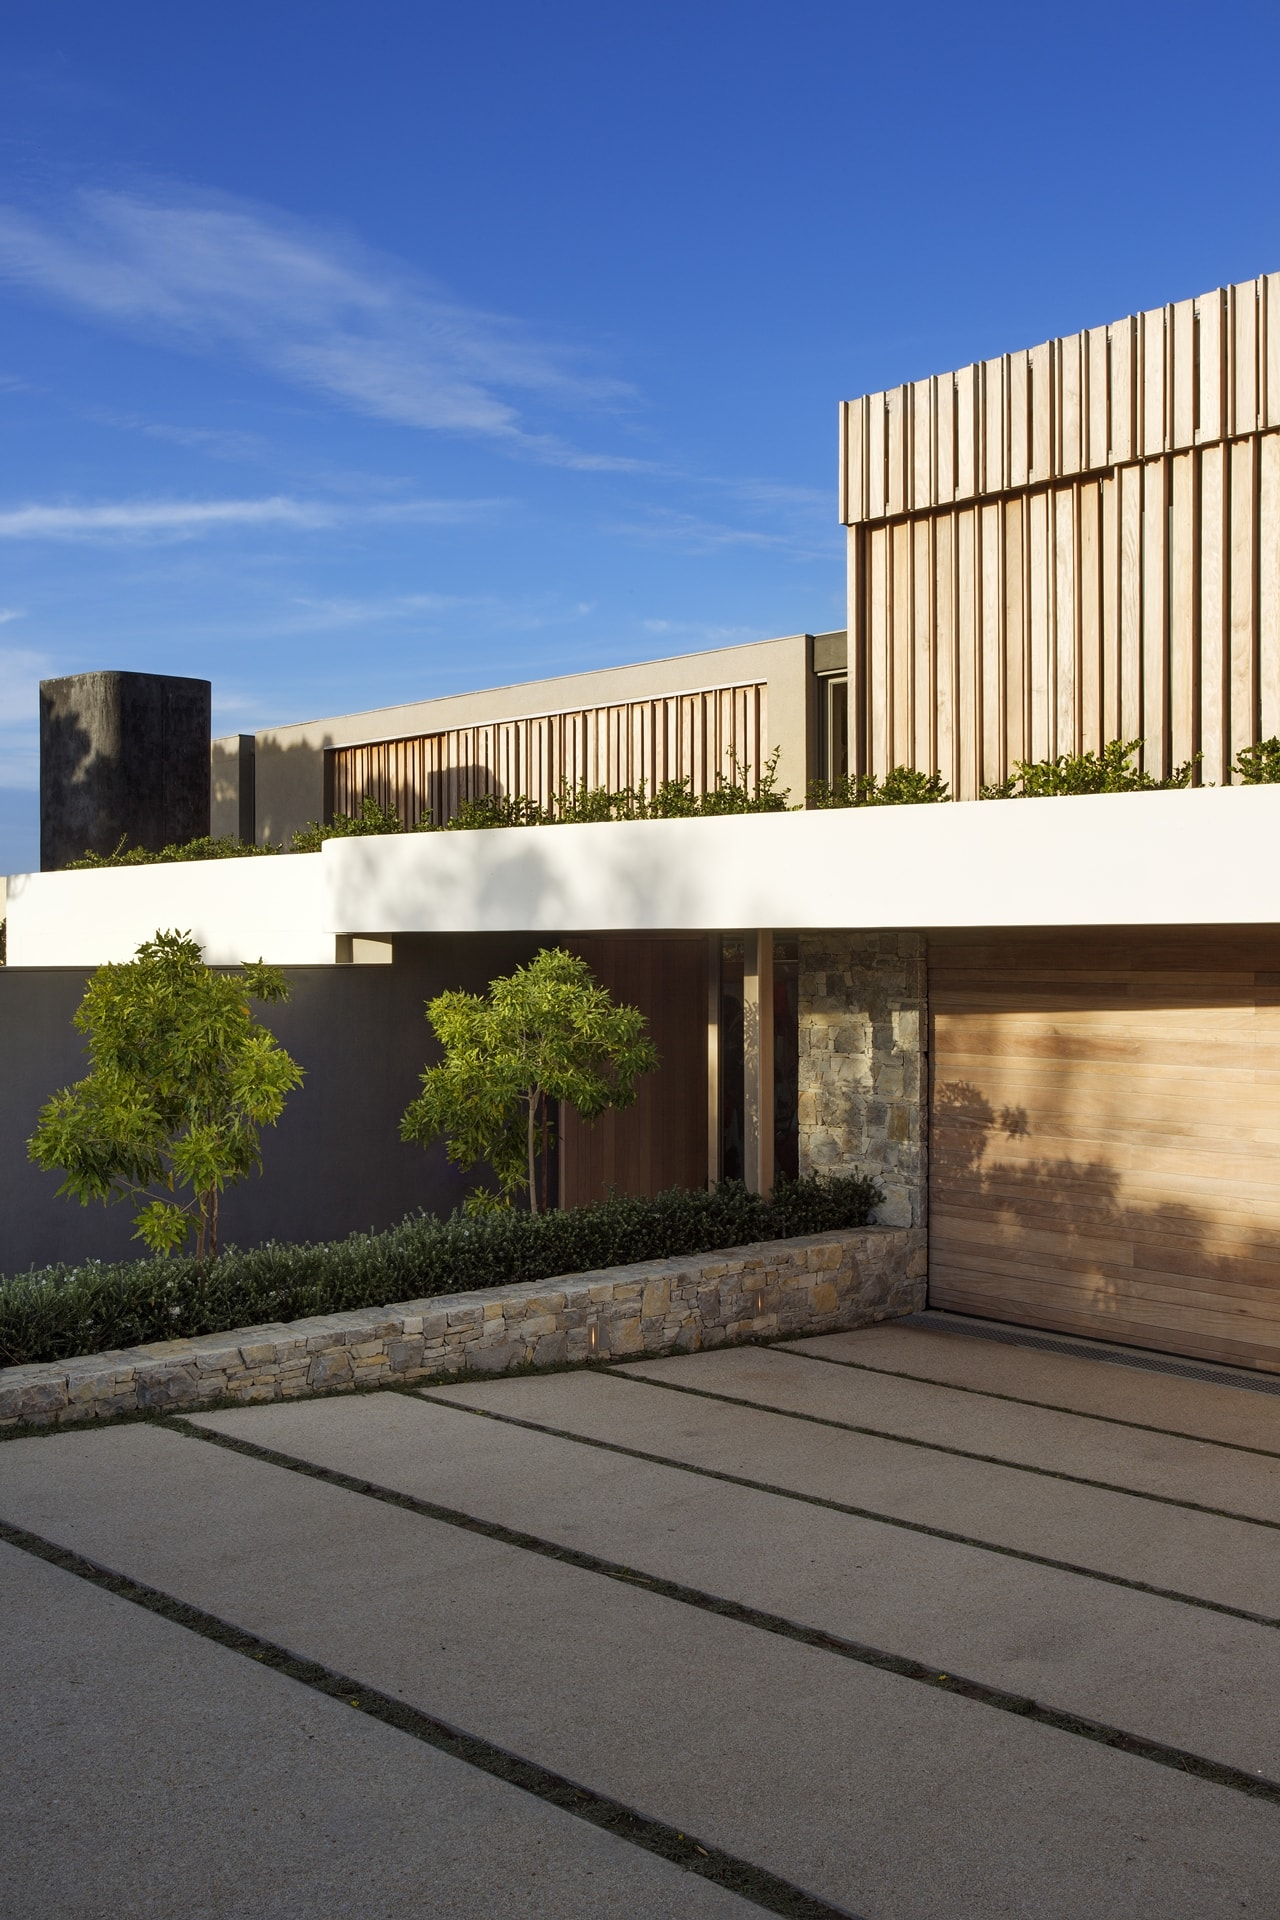 Entrance to the modern home with modern home with wooden facade by SAOTA